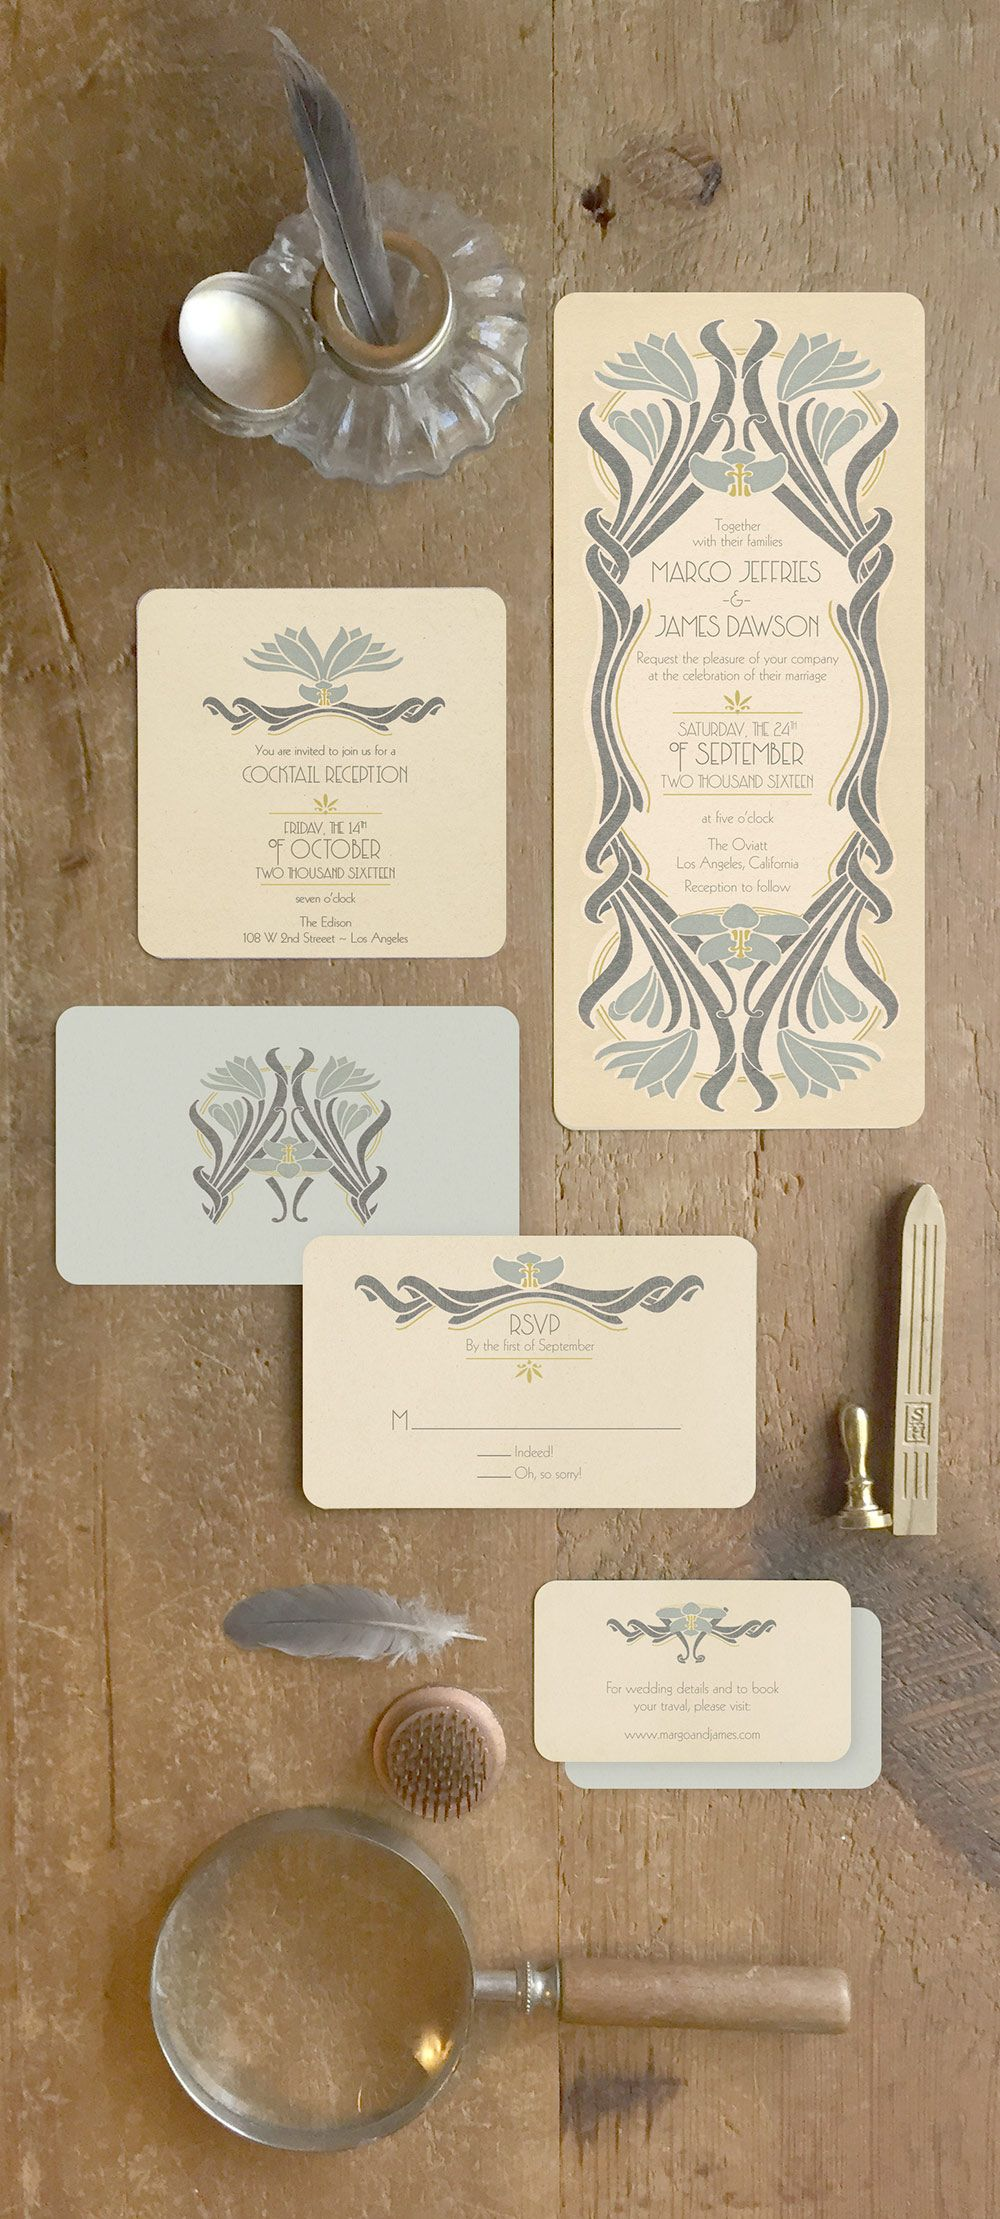 how to mail scroll wedding invitations%0A INTAGE WEDDING INVITATIONS What a great way to set the tone of your wedding   A